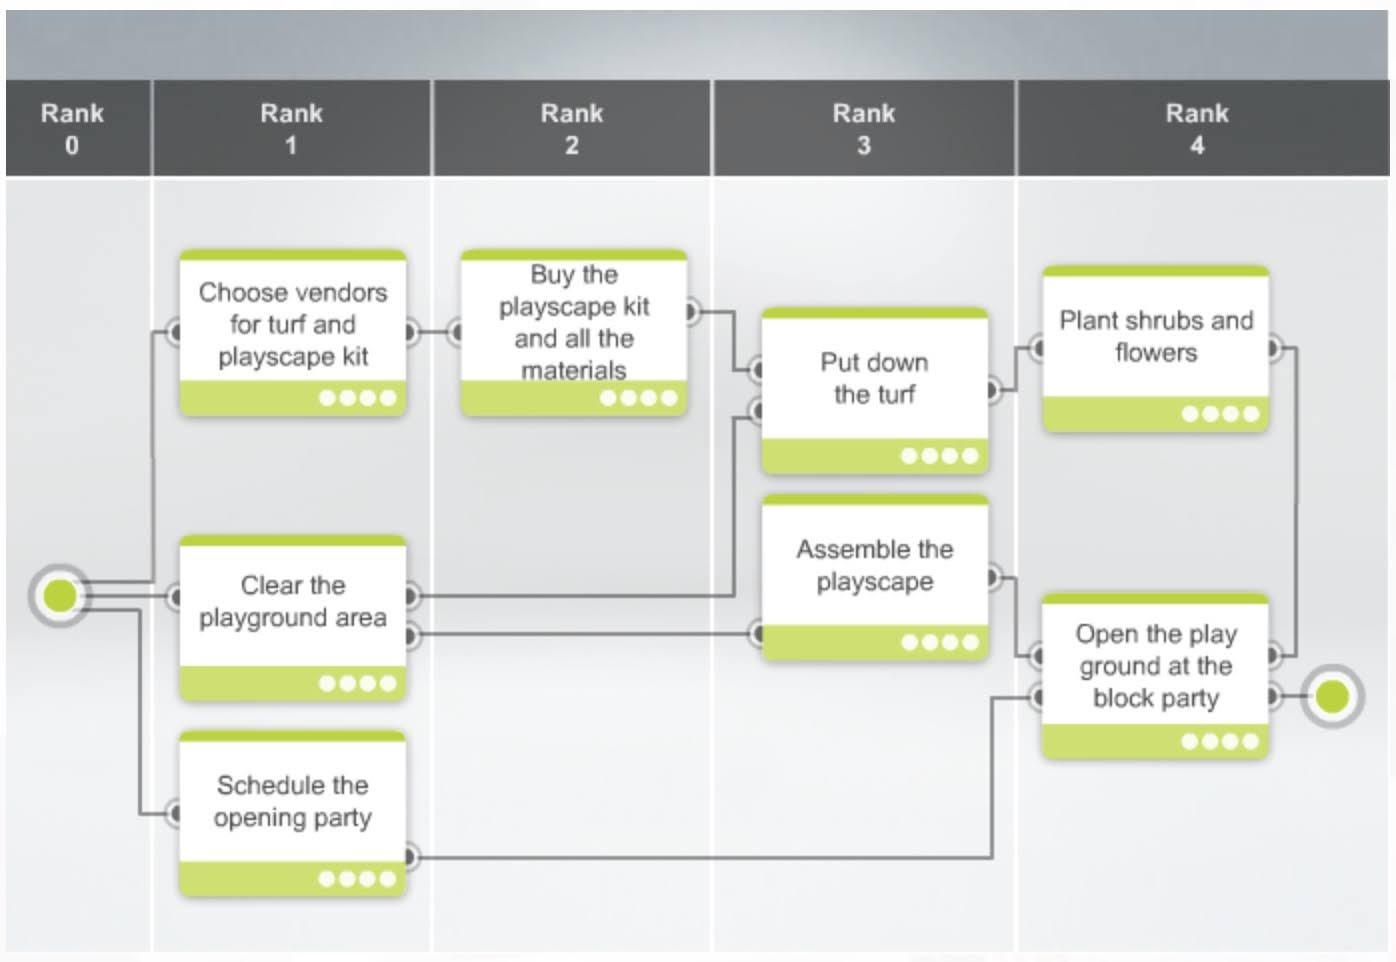 This example will give you an overview of the entire process.